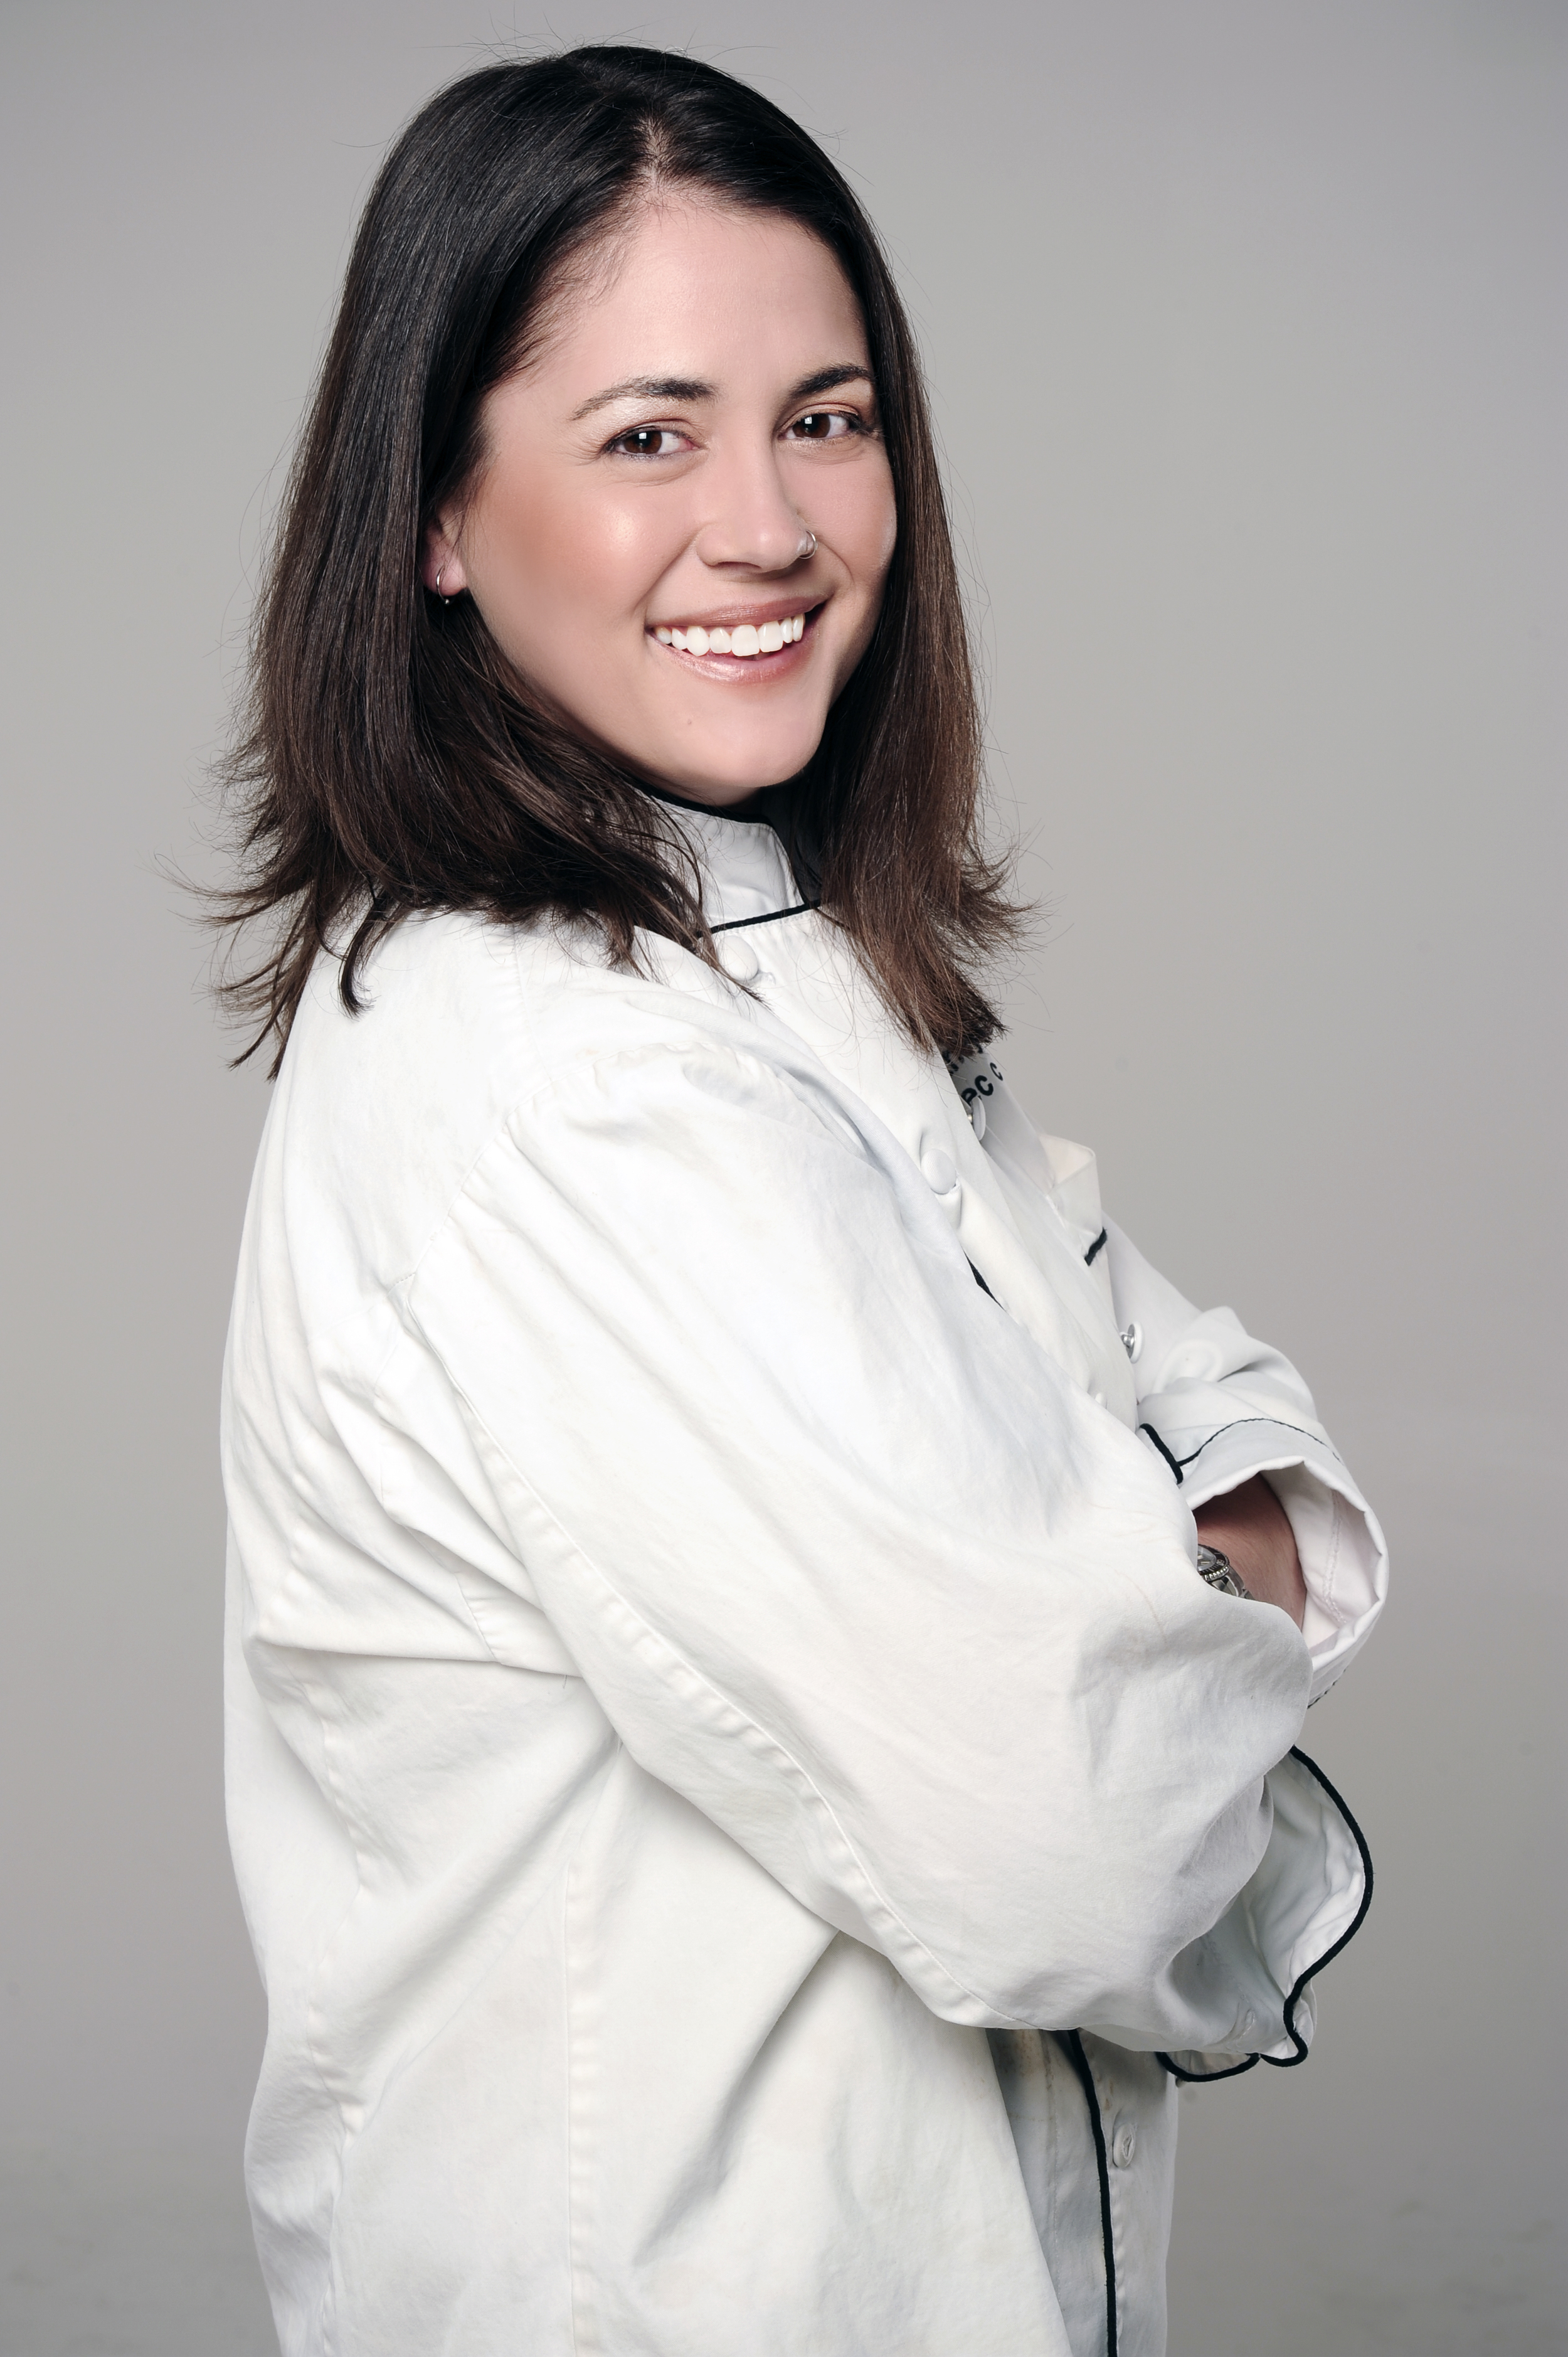 Executive Chef & Owner, Courtney Renn